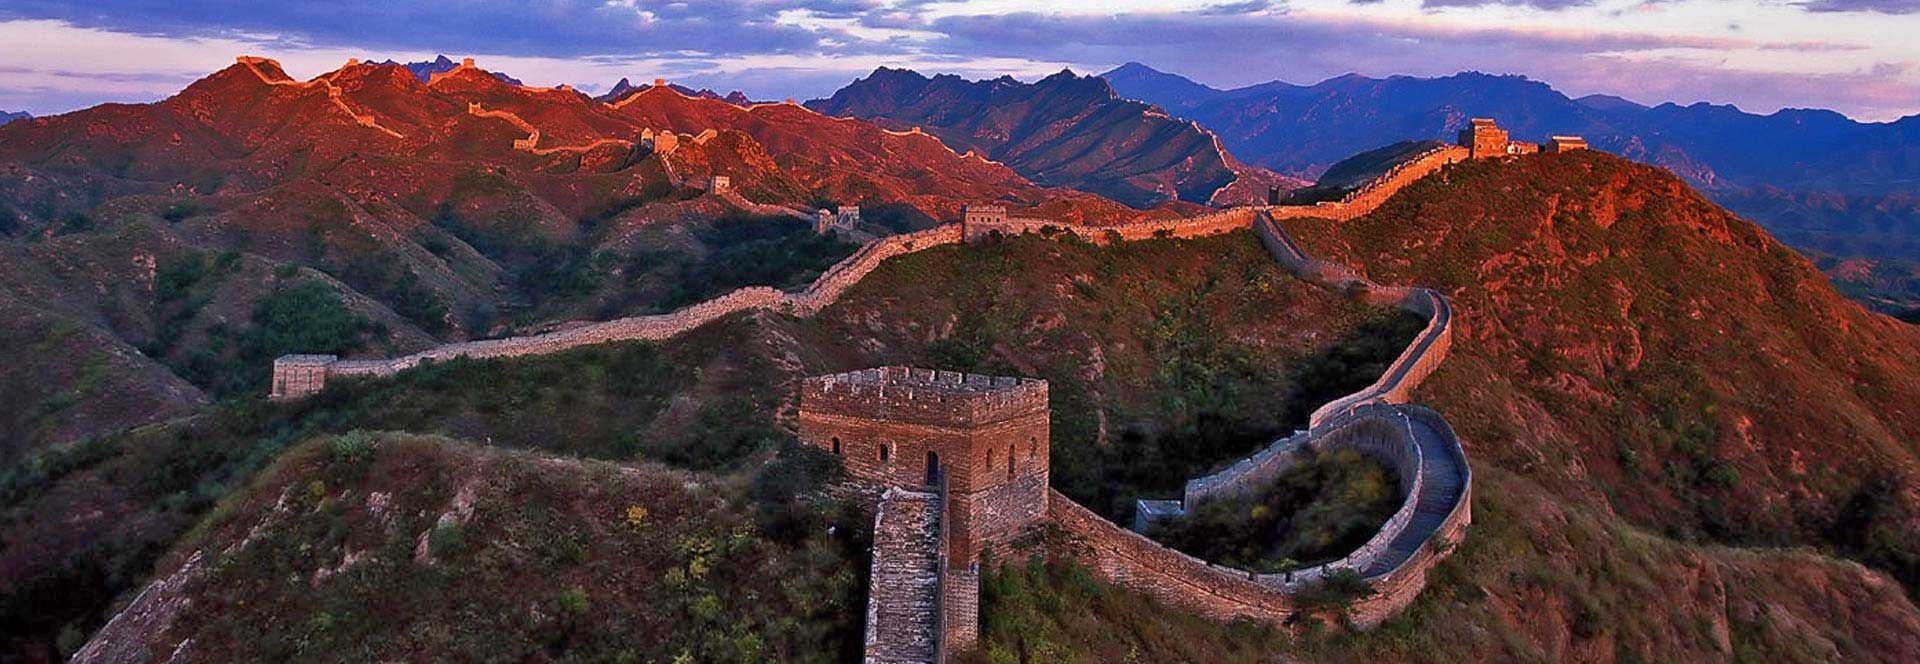 descriptive essay on great wall of china @example essays great wall of china bibliography 5 pages 1273 words china's three gorges: before the floodchina's three gorges dam is the largest project in history since the great wall when the dam is completed twelve years from now, it will be the most powerful dam ever built.